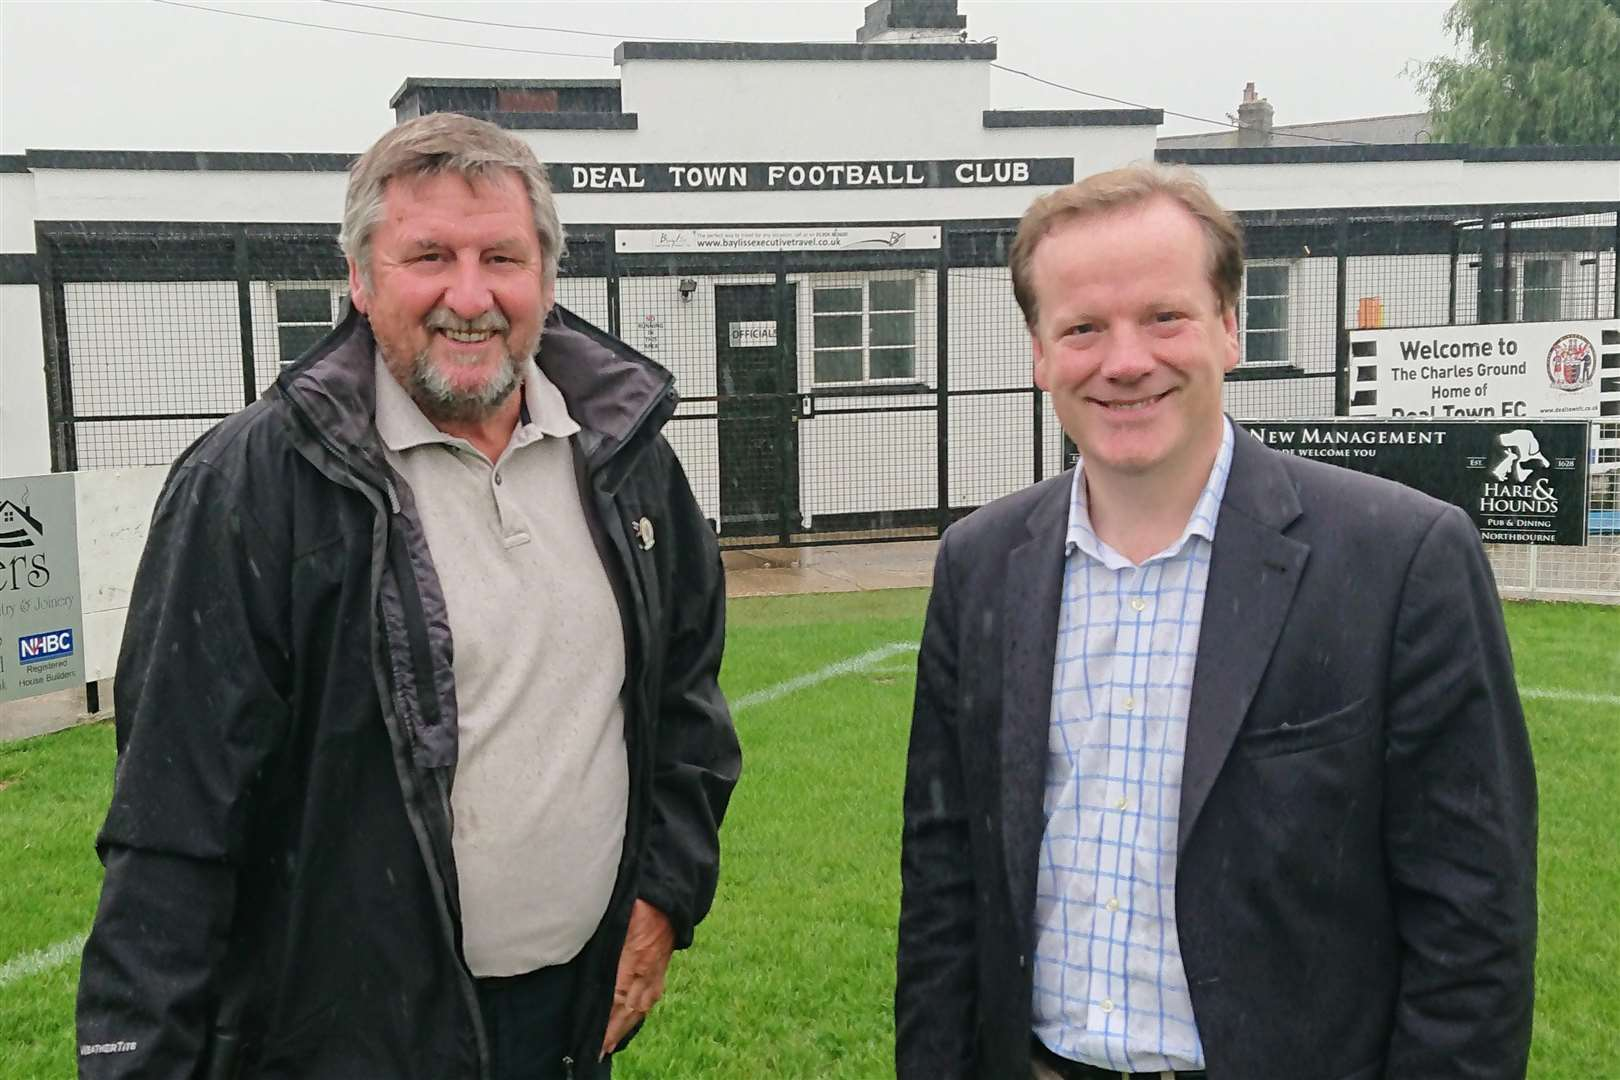 MP Charlie Elphicke with Deal Town FC chairman David Chmura